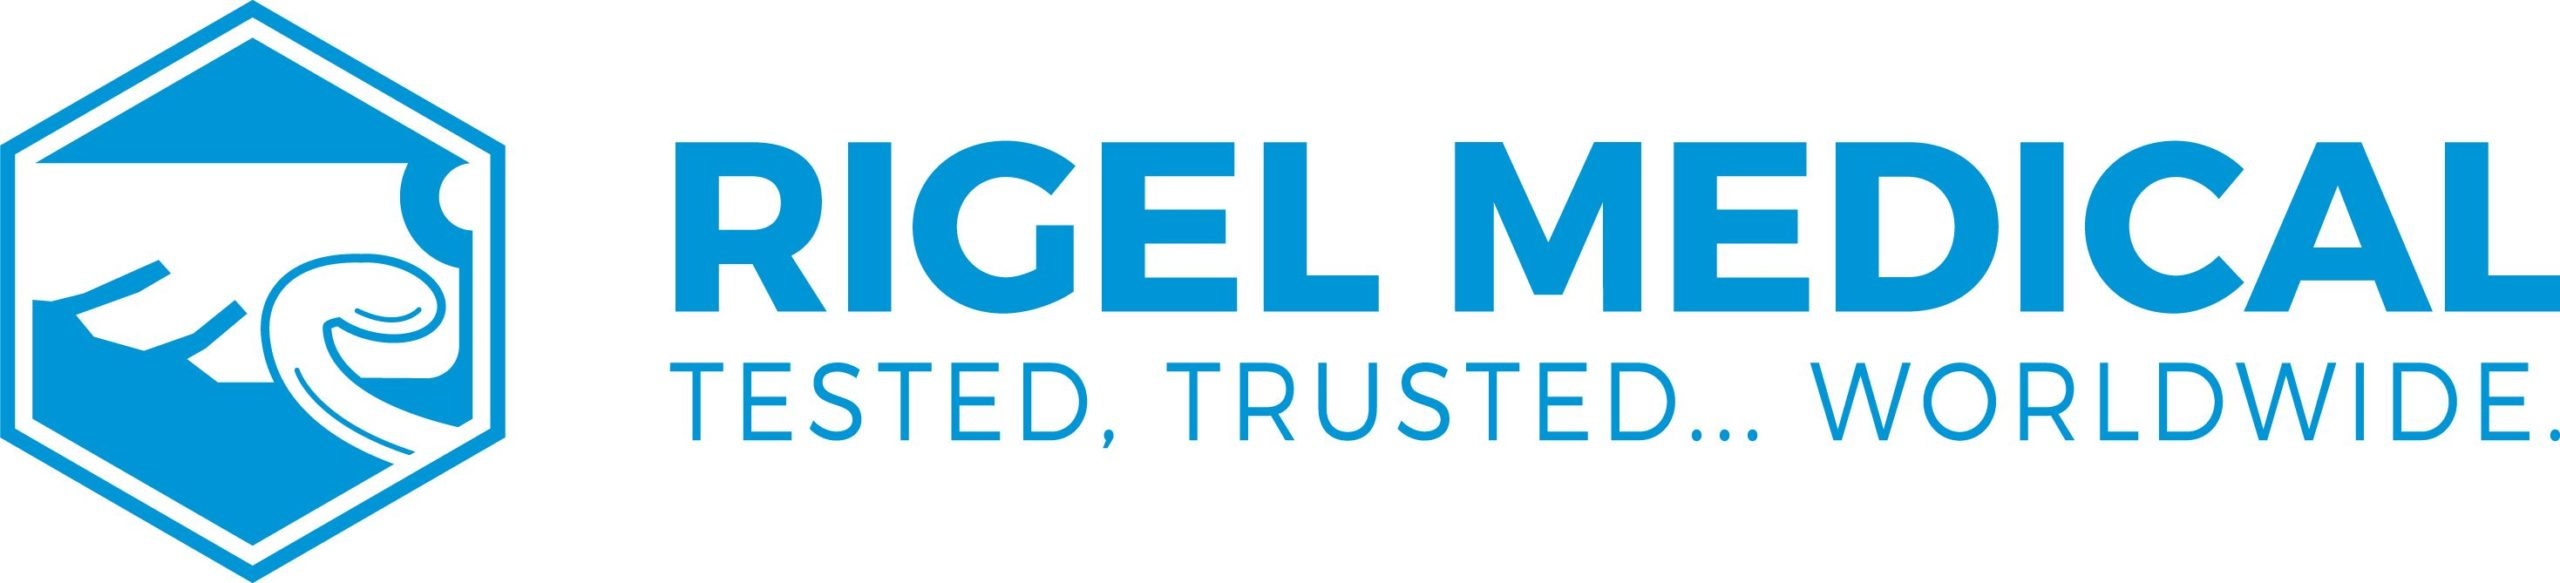 Rigel Medical Logotype